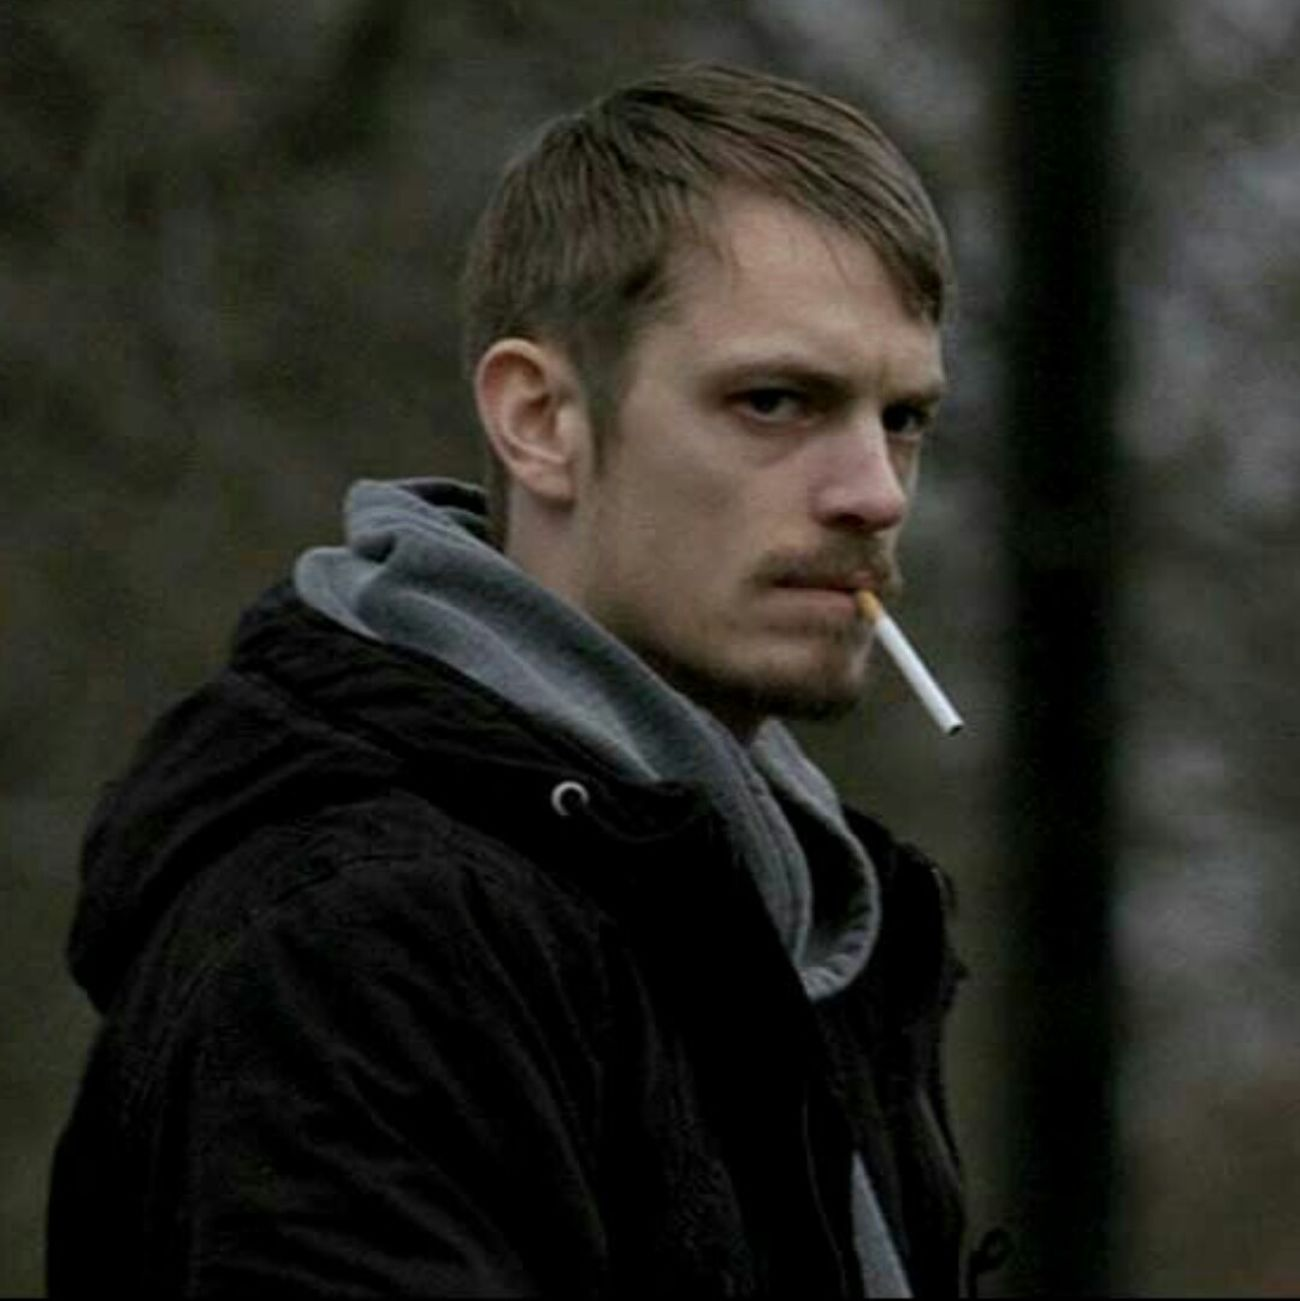 Netflix Stephen Holder Joel Kinnaman The Killing